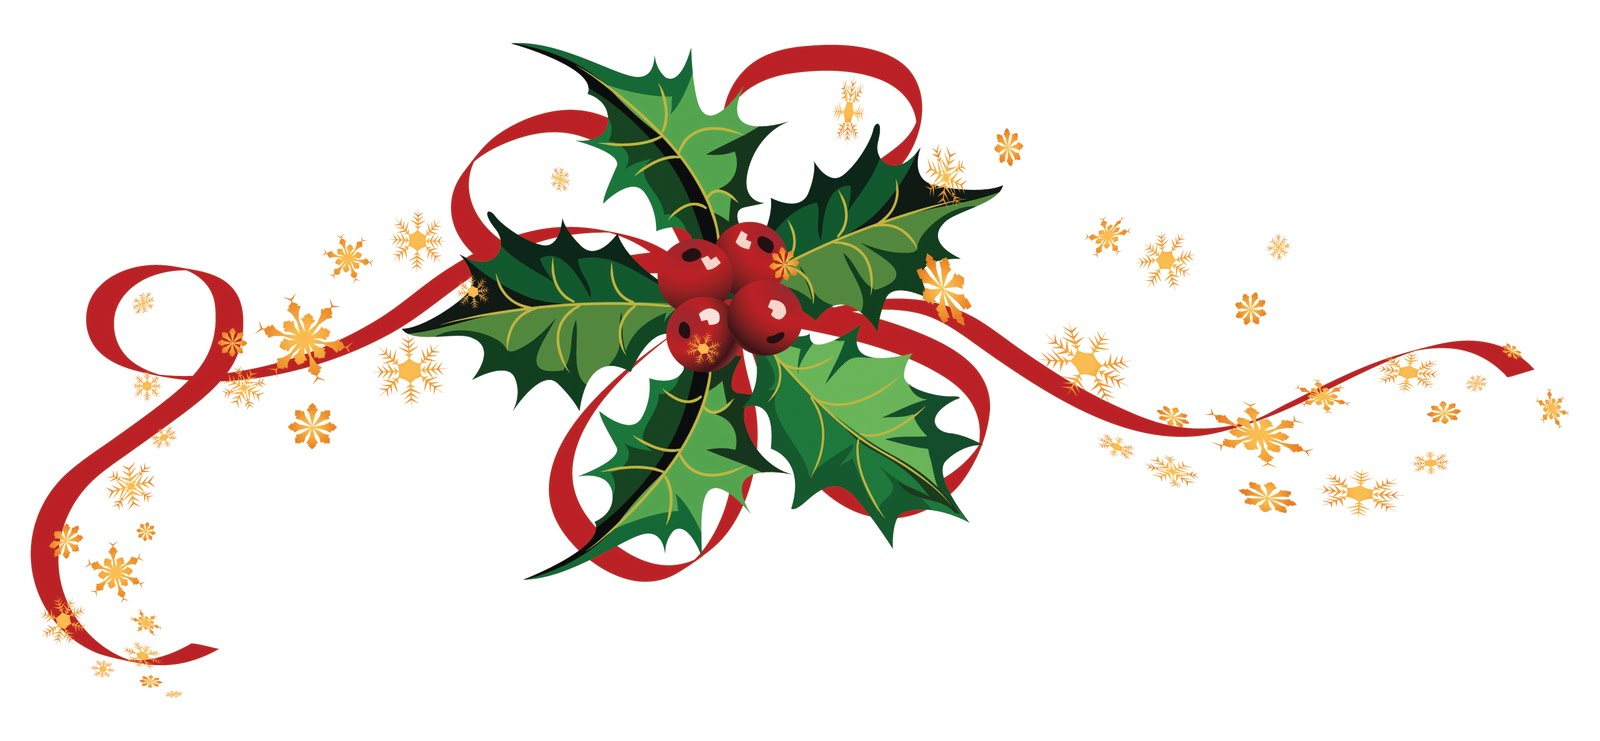 Vines clipart christmas. Ivy free download best